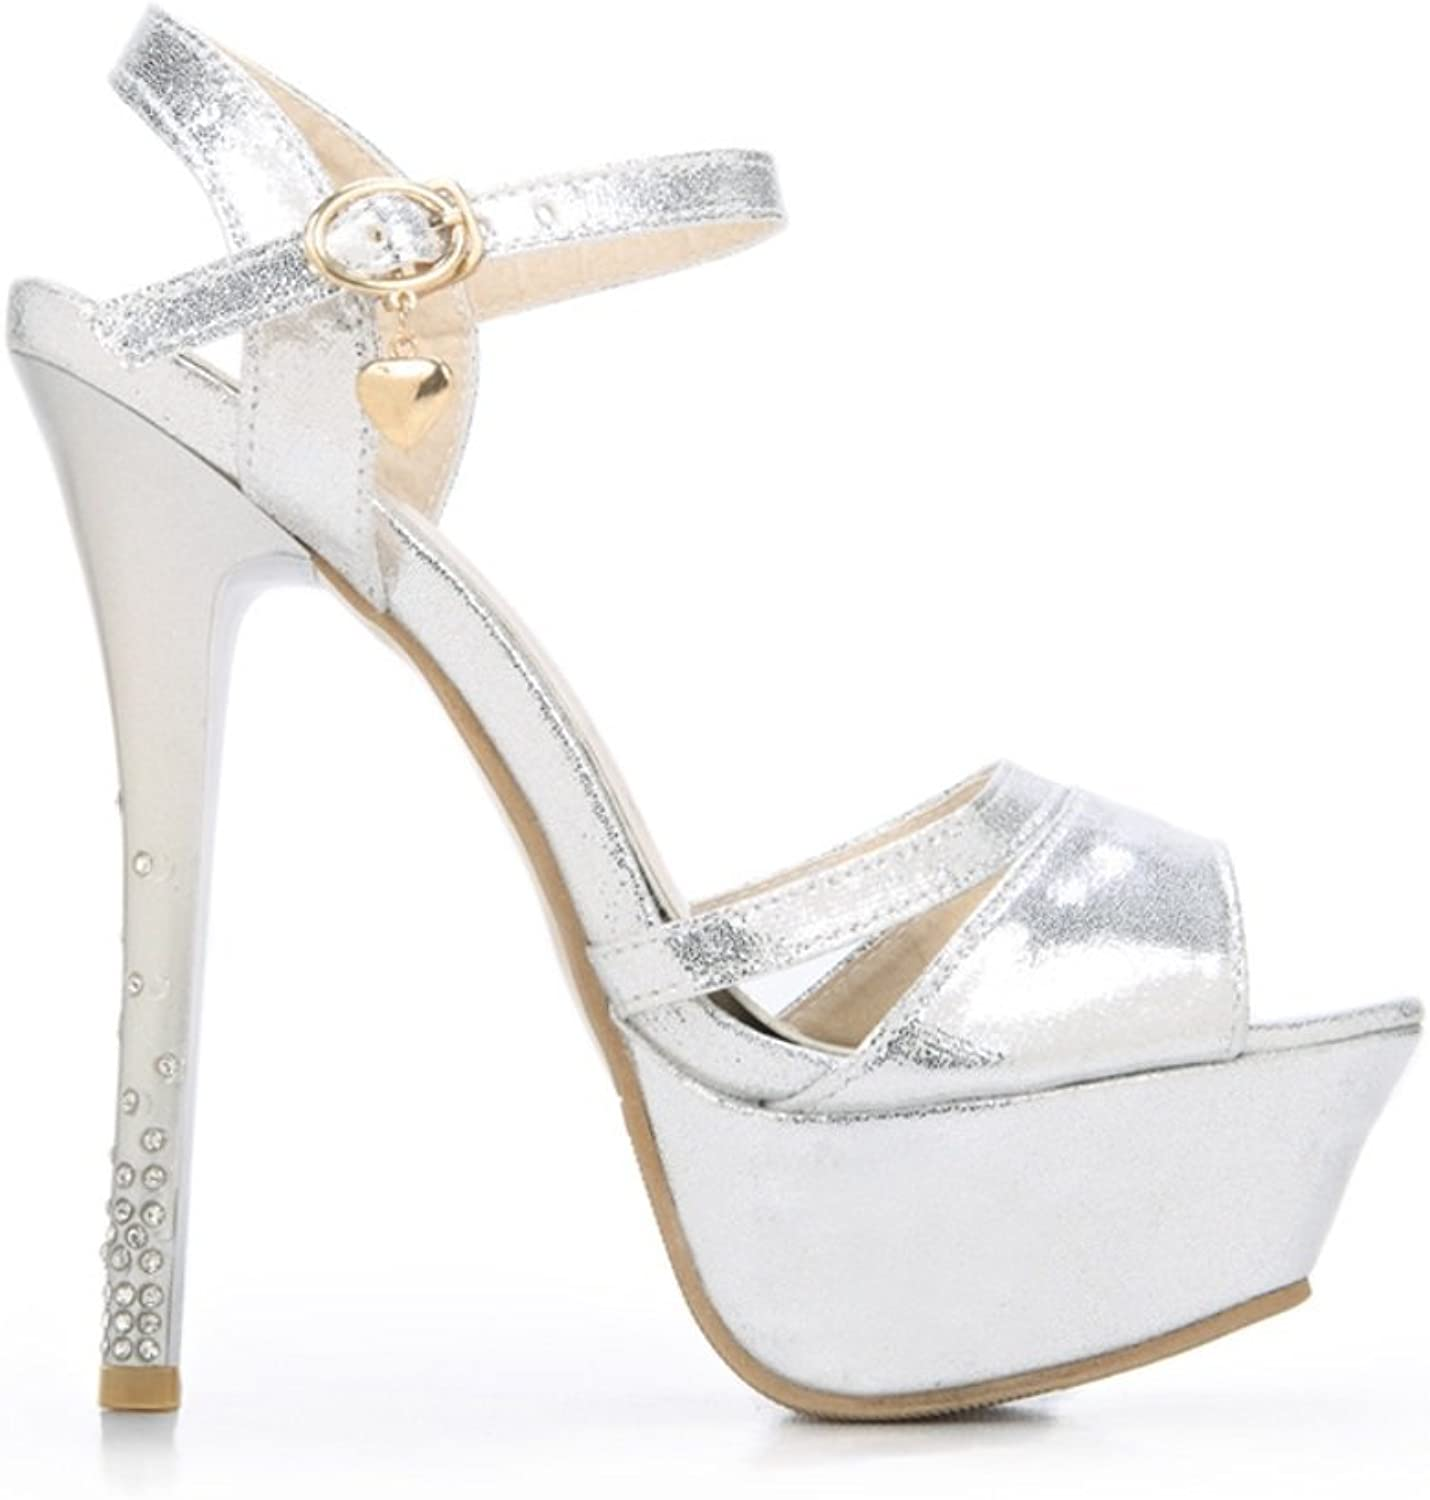 Women's Fine and Super High Heel-Stylish Fish-Mouth Sandals-Pure Rhinestone Buckle with Sandals-Comfort Heel shoes Zhhzz